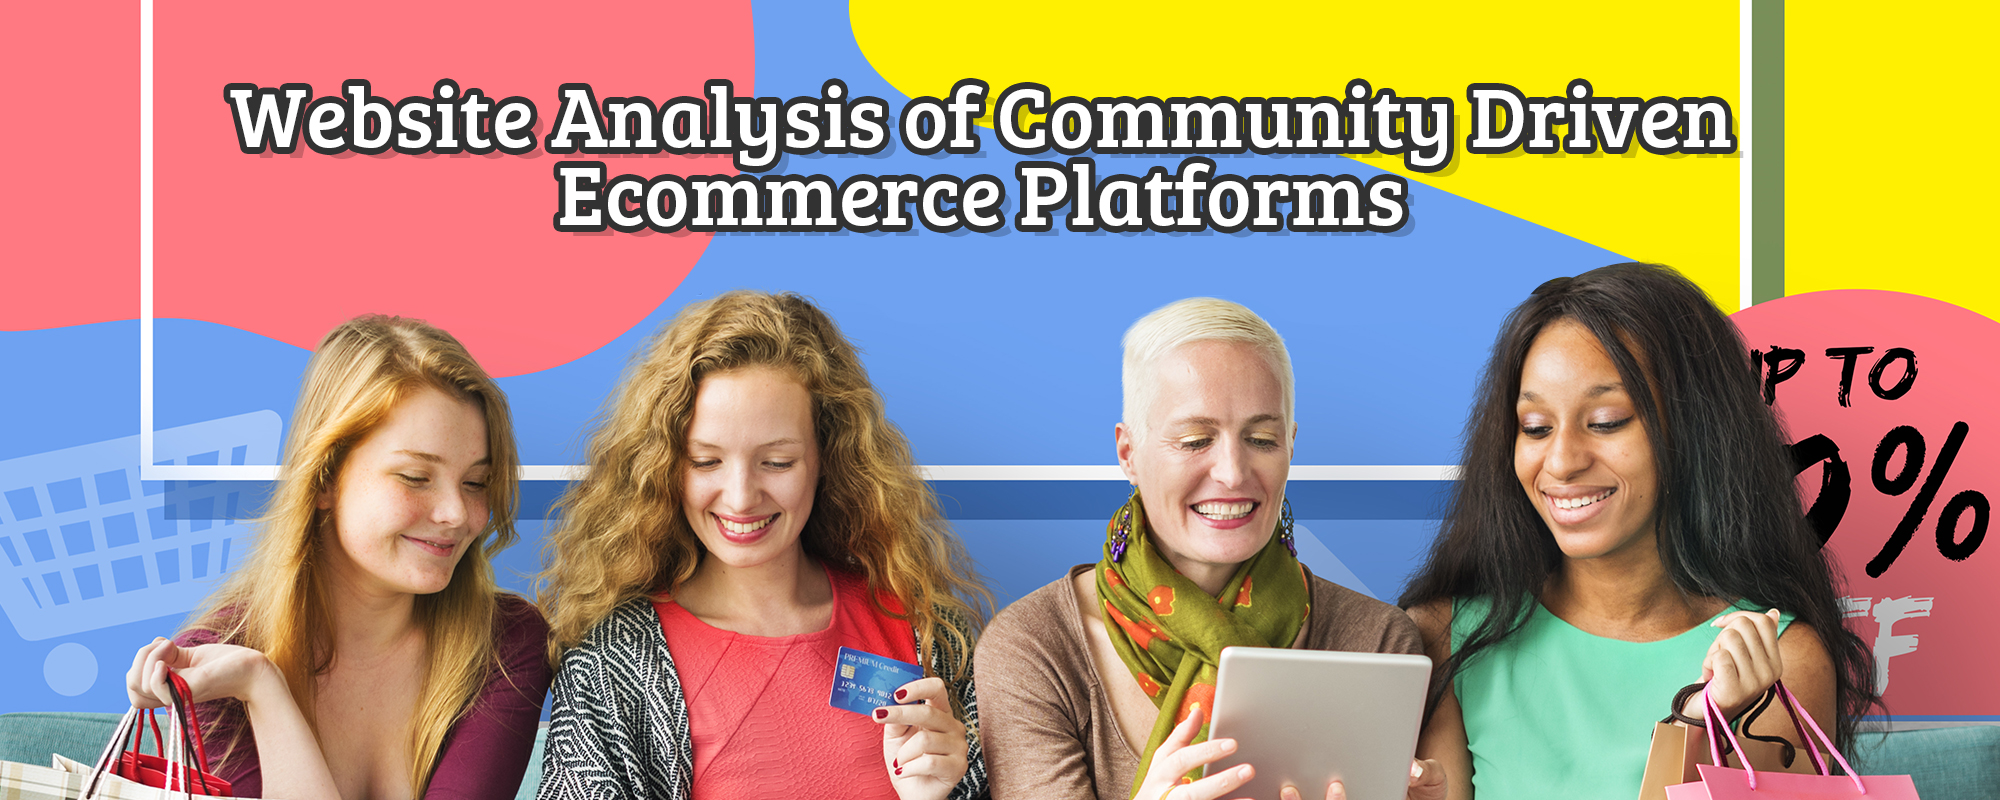 Business Model, Website Features Decoded to Launch Community Based Ecommerce Site